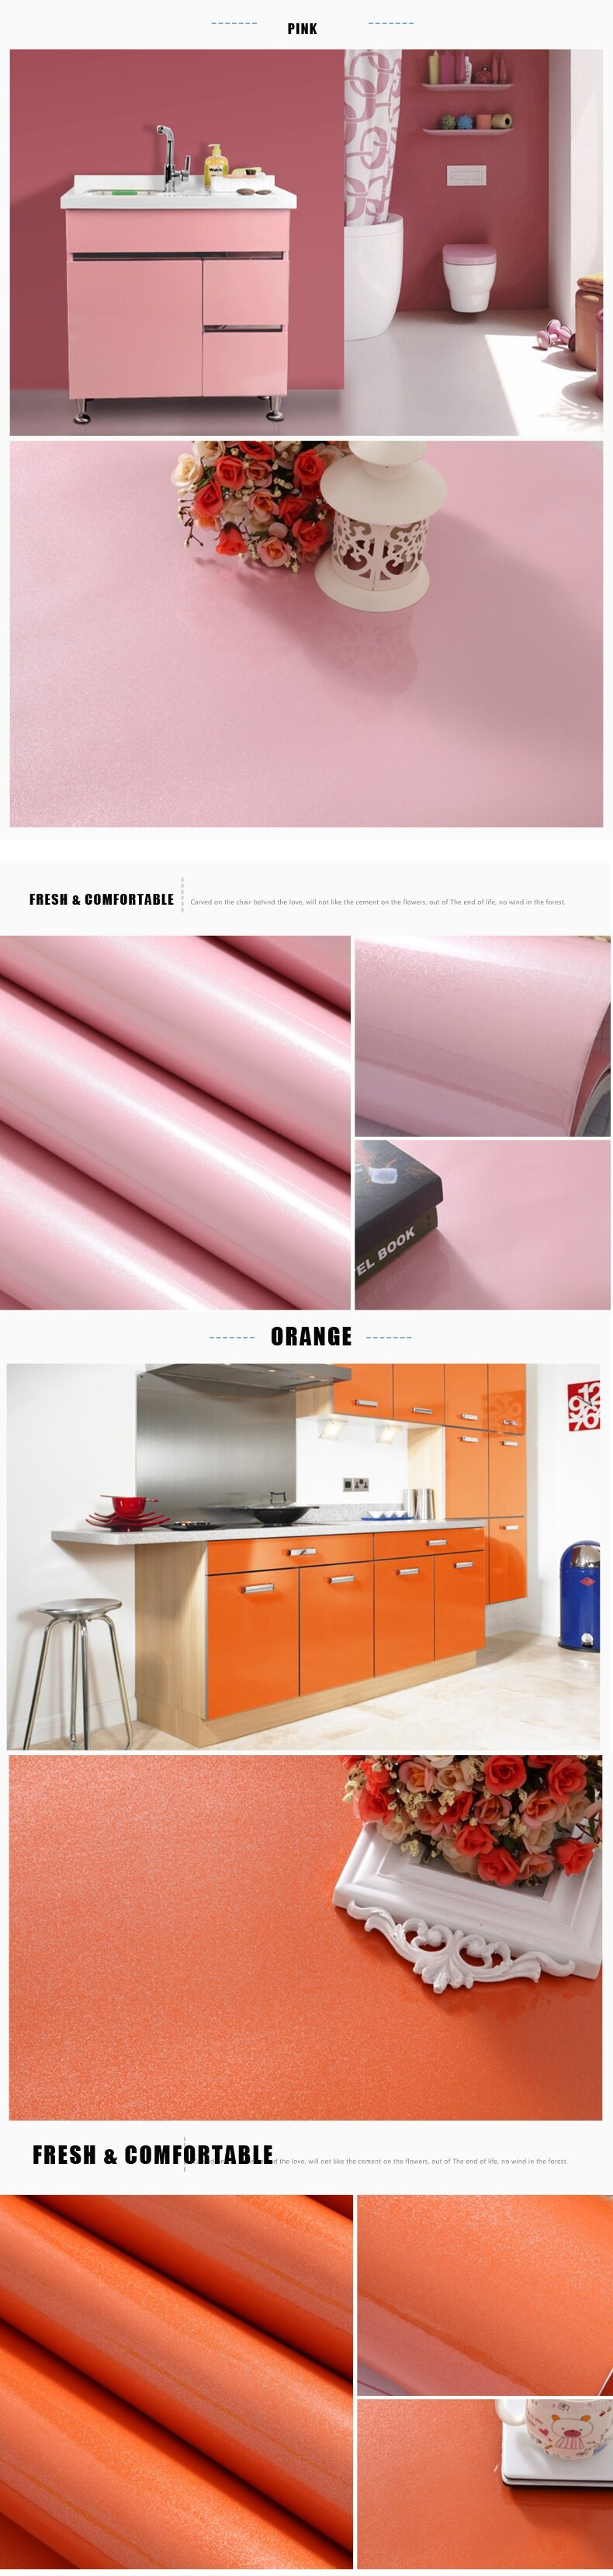 1 Roll 16.4ft Furniture Renovation Decal Pearlized Stoving Varnish  Refurbishment Stickers Wallpaper